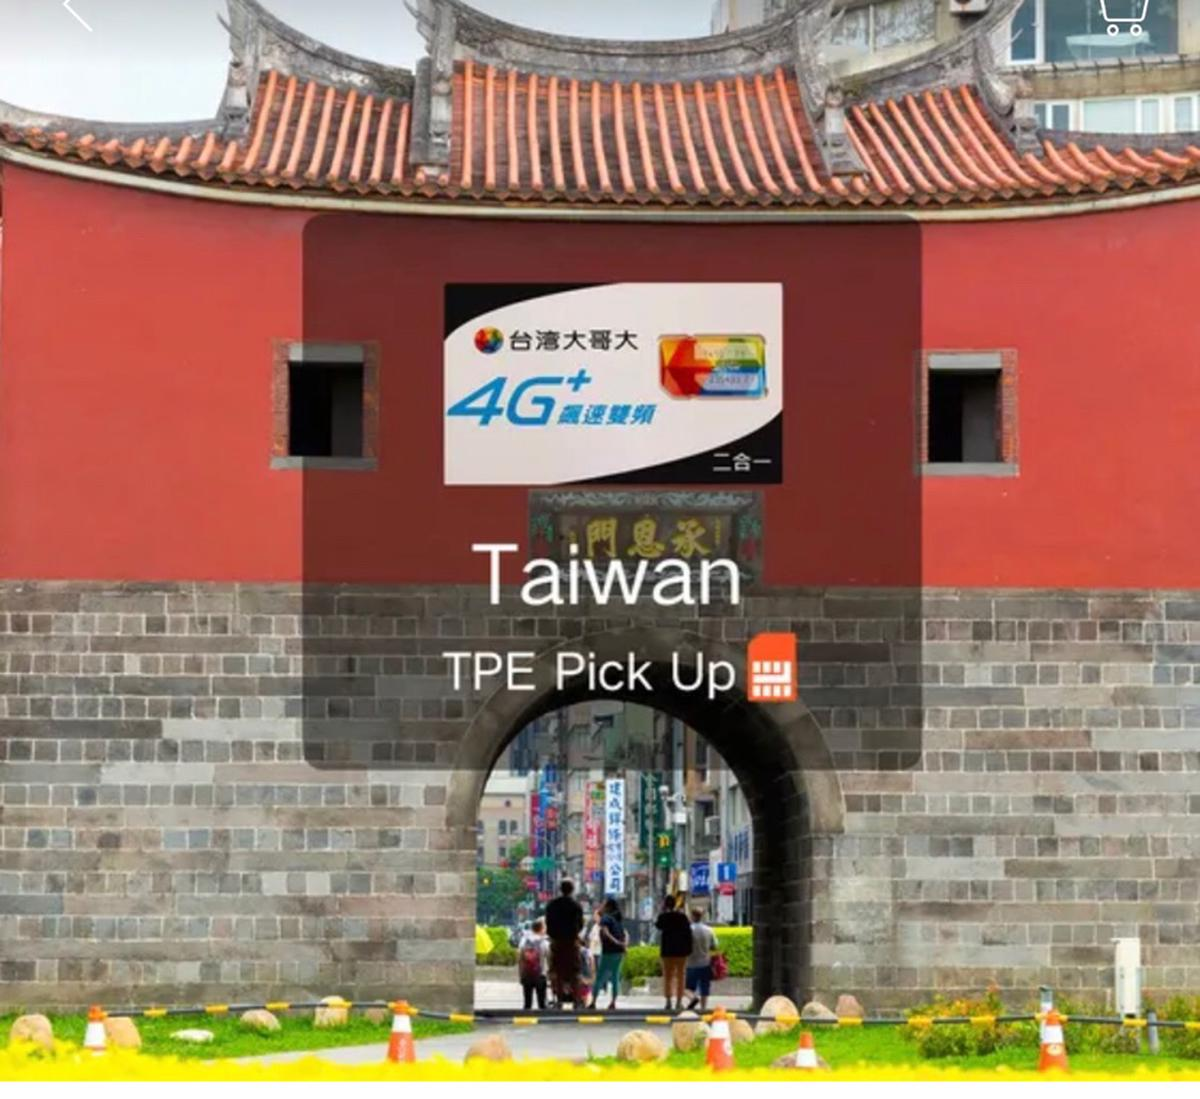 'Welldone' 4G SIM Card with Calls (TW Airport Pick Up) for Taiwan